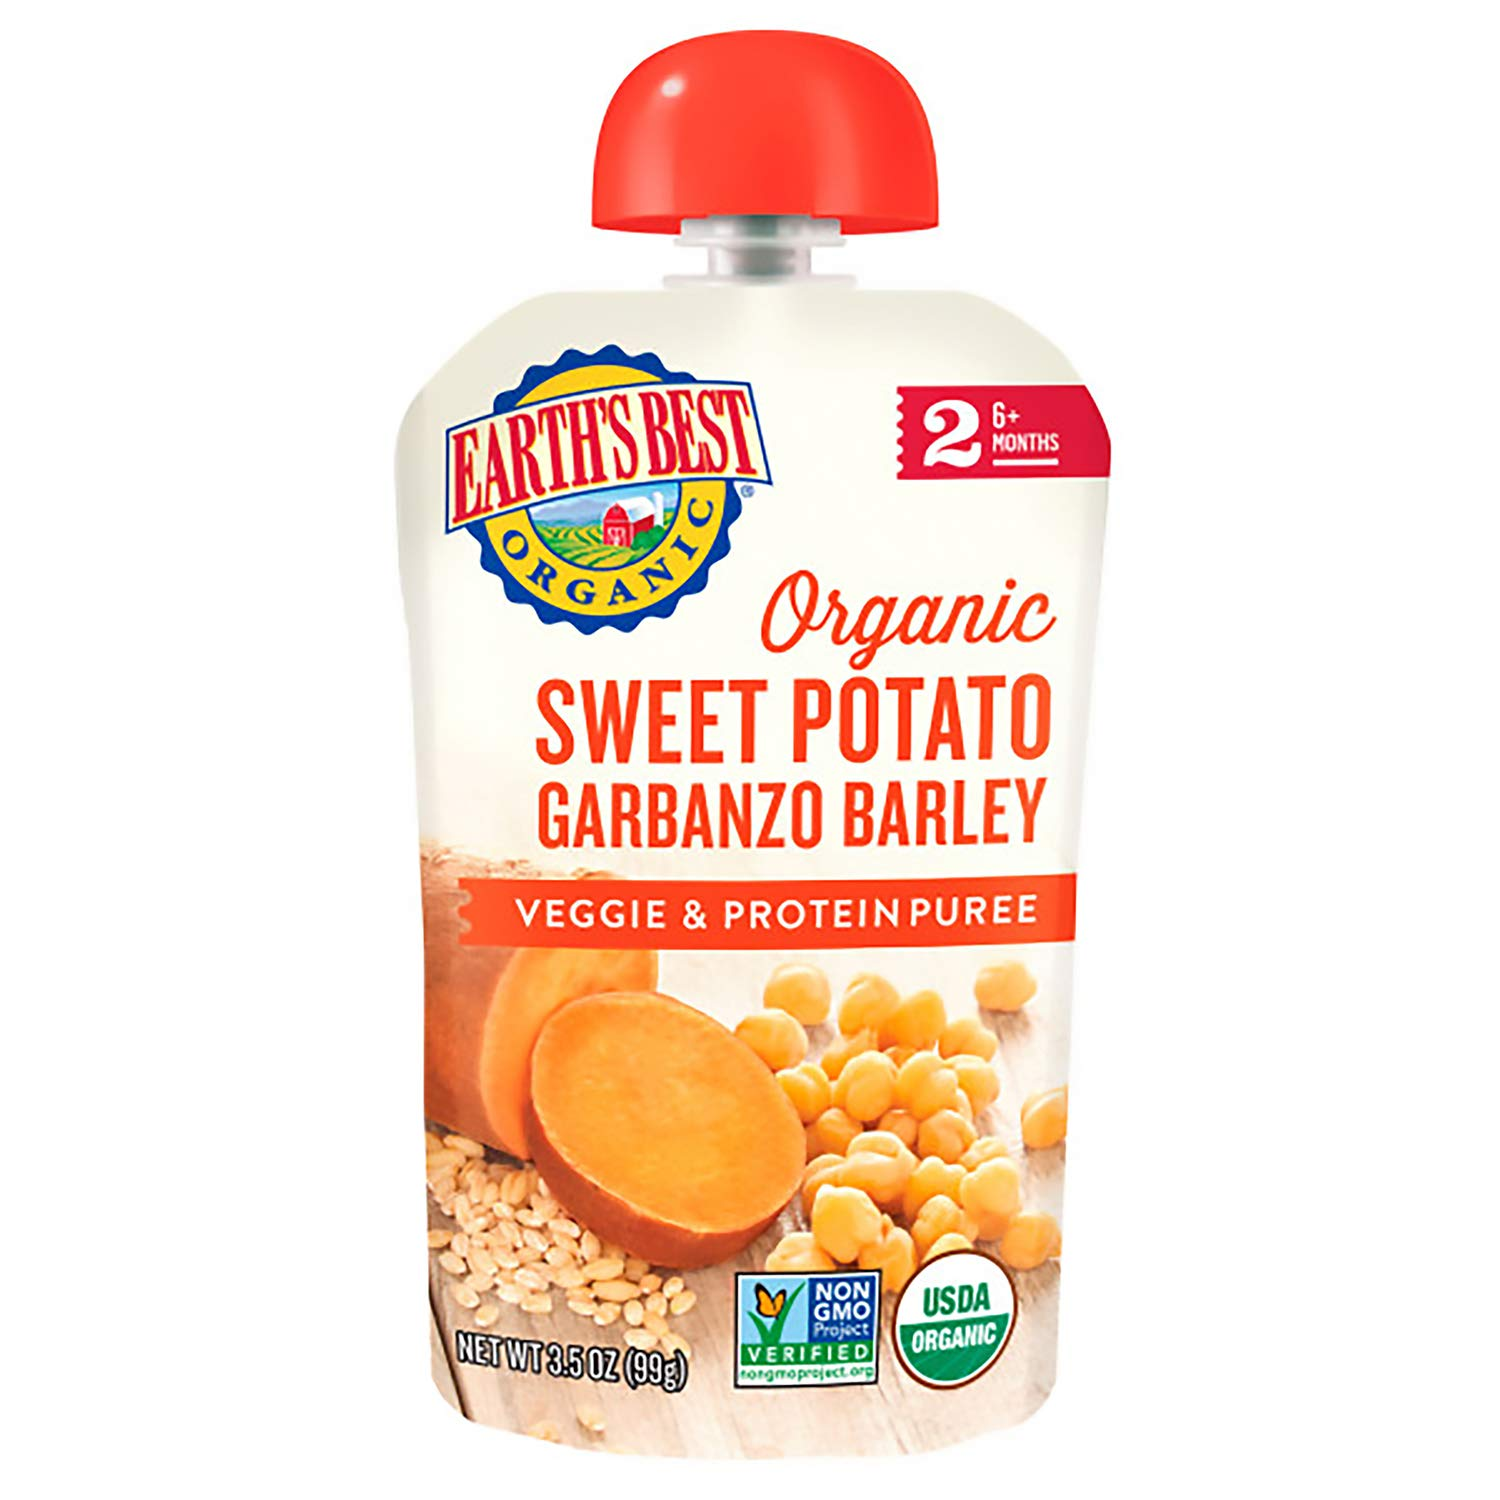 Earth's Best Organic Stage 2 Baby Food, Sweet Potato Garbanzo Barley, 3.5 Oz Pouch (Pack of 12)